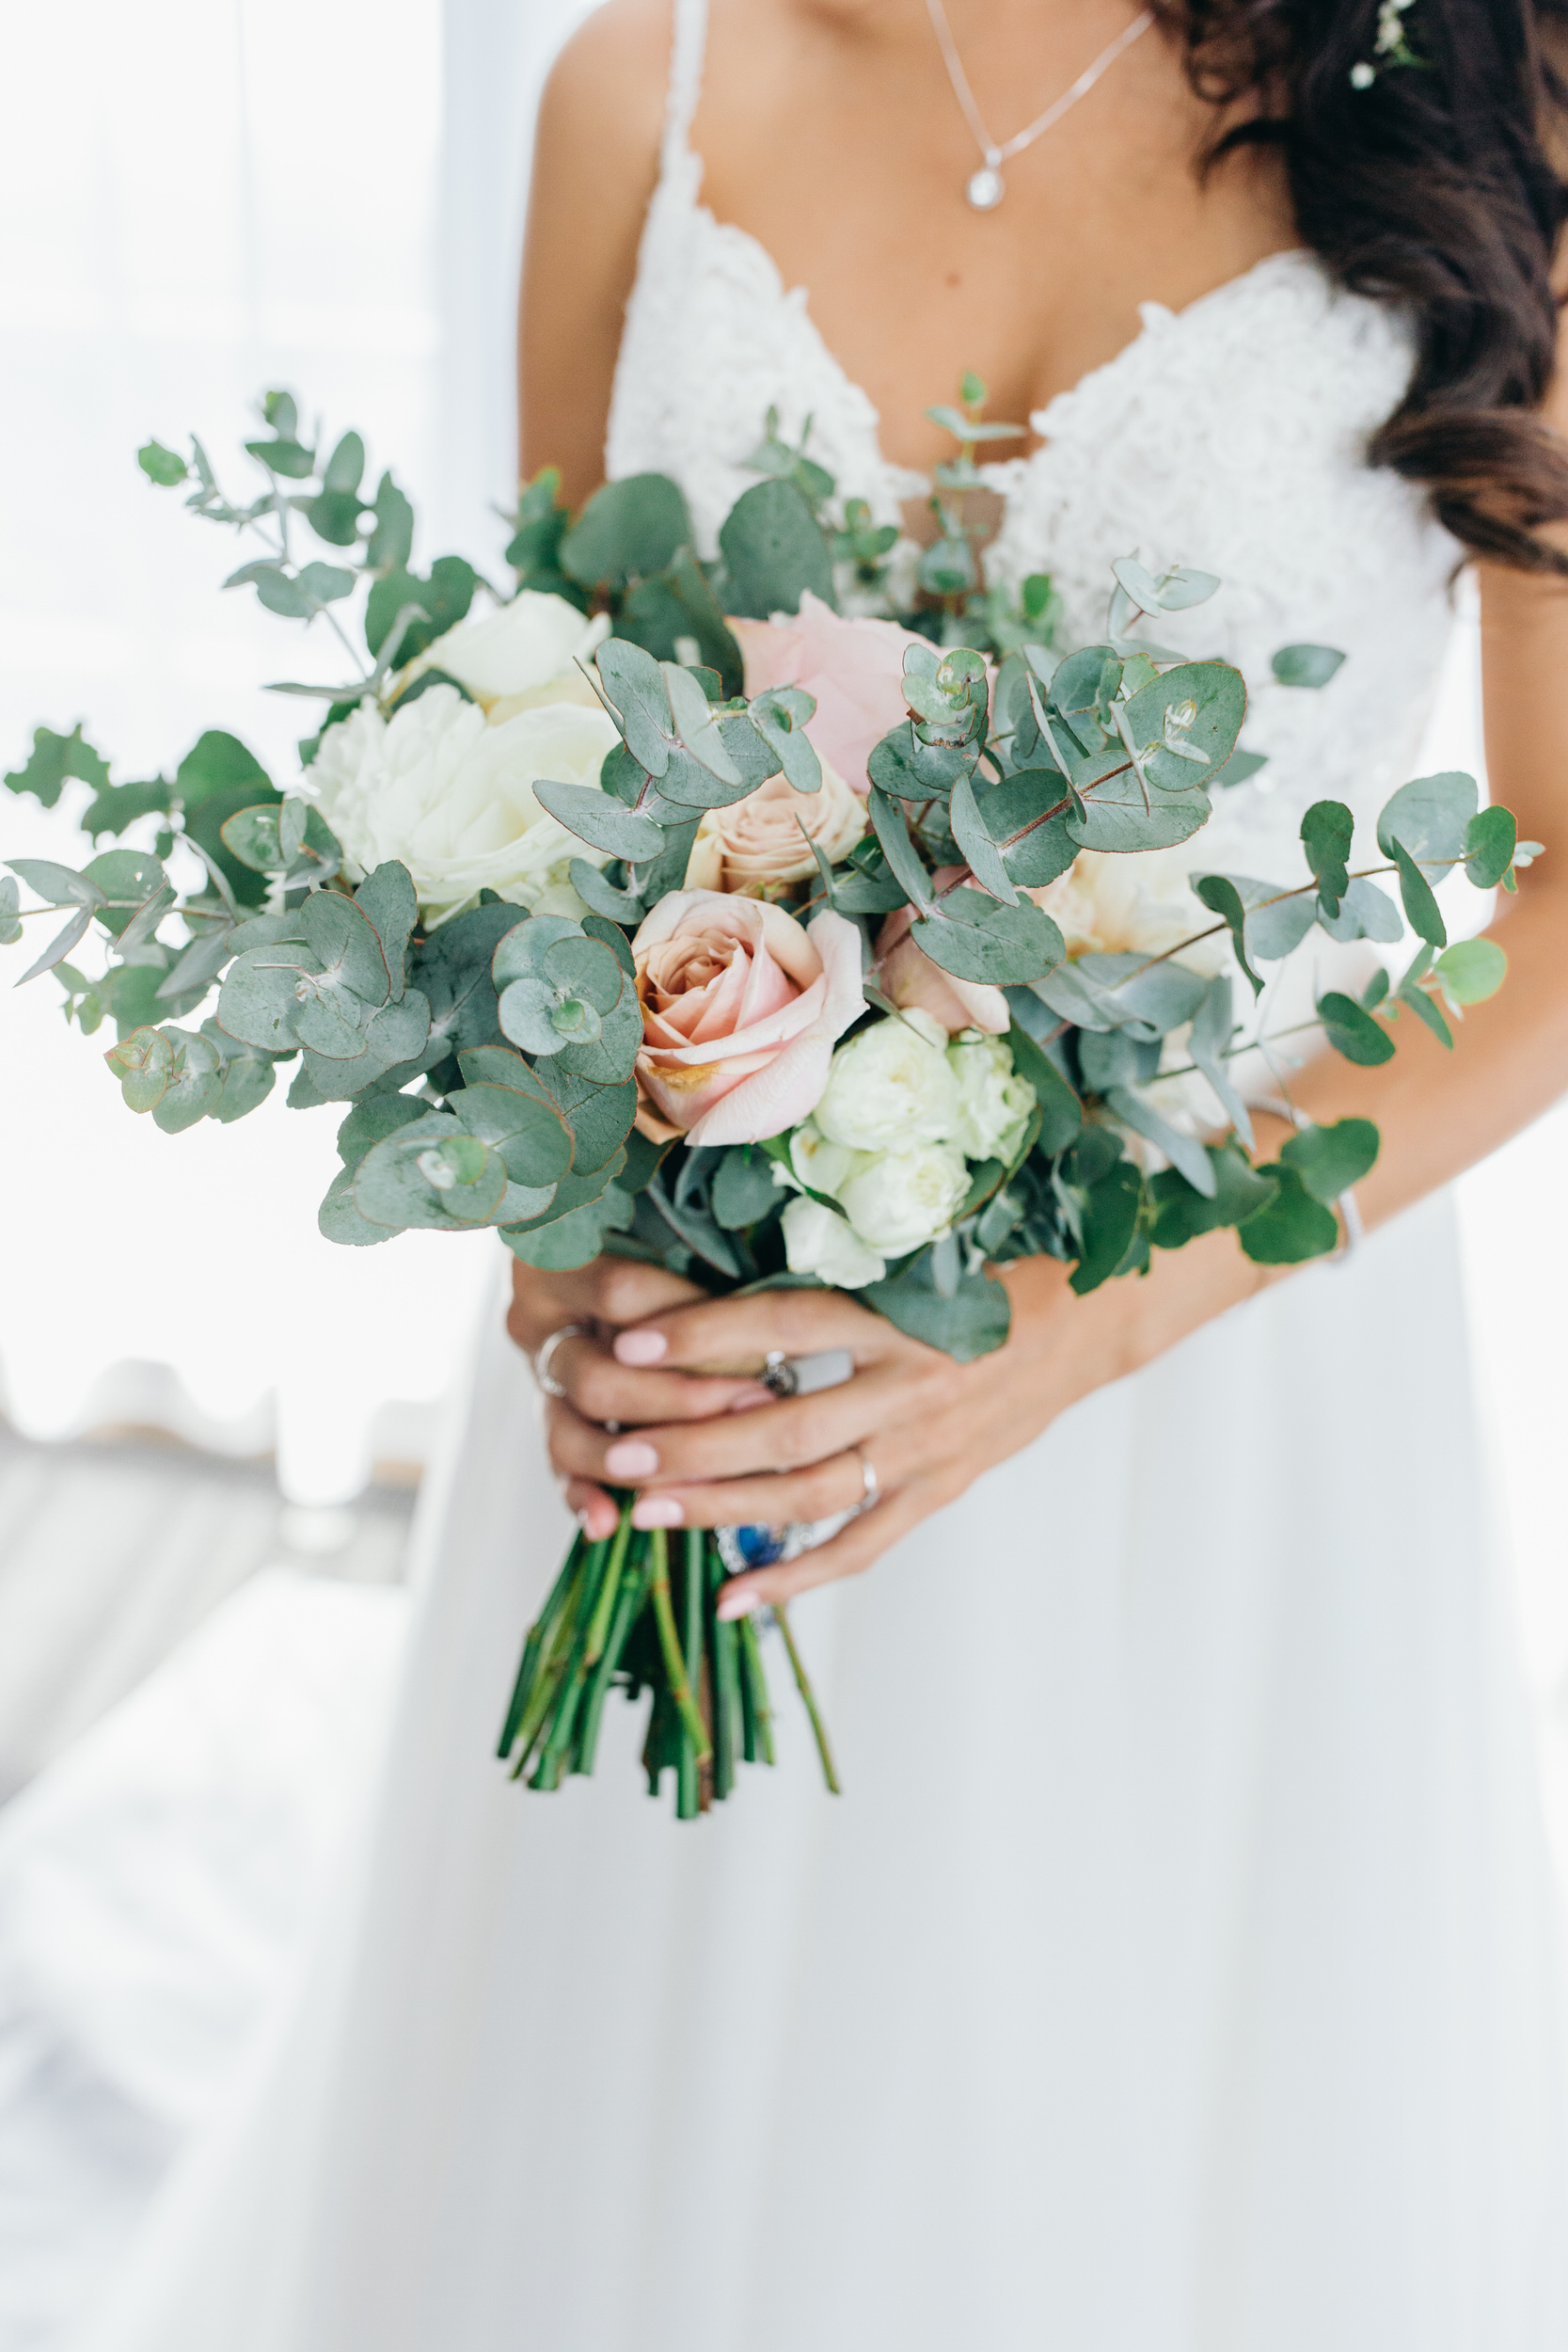 Courtney bouquet bumble and bloom wedding inspiration